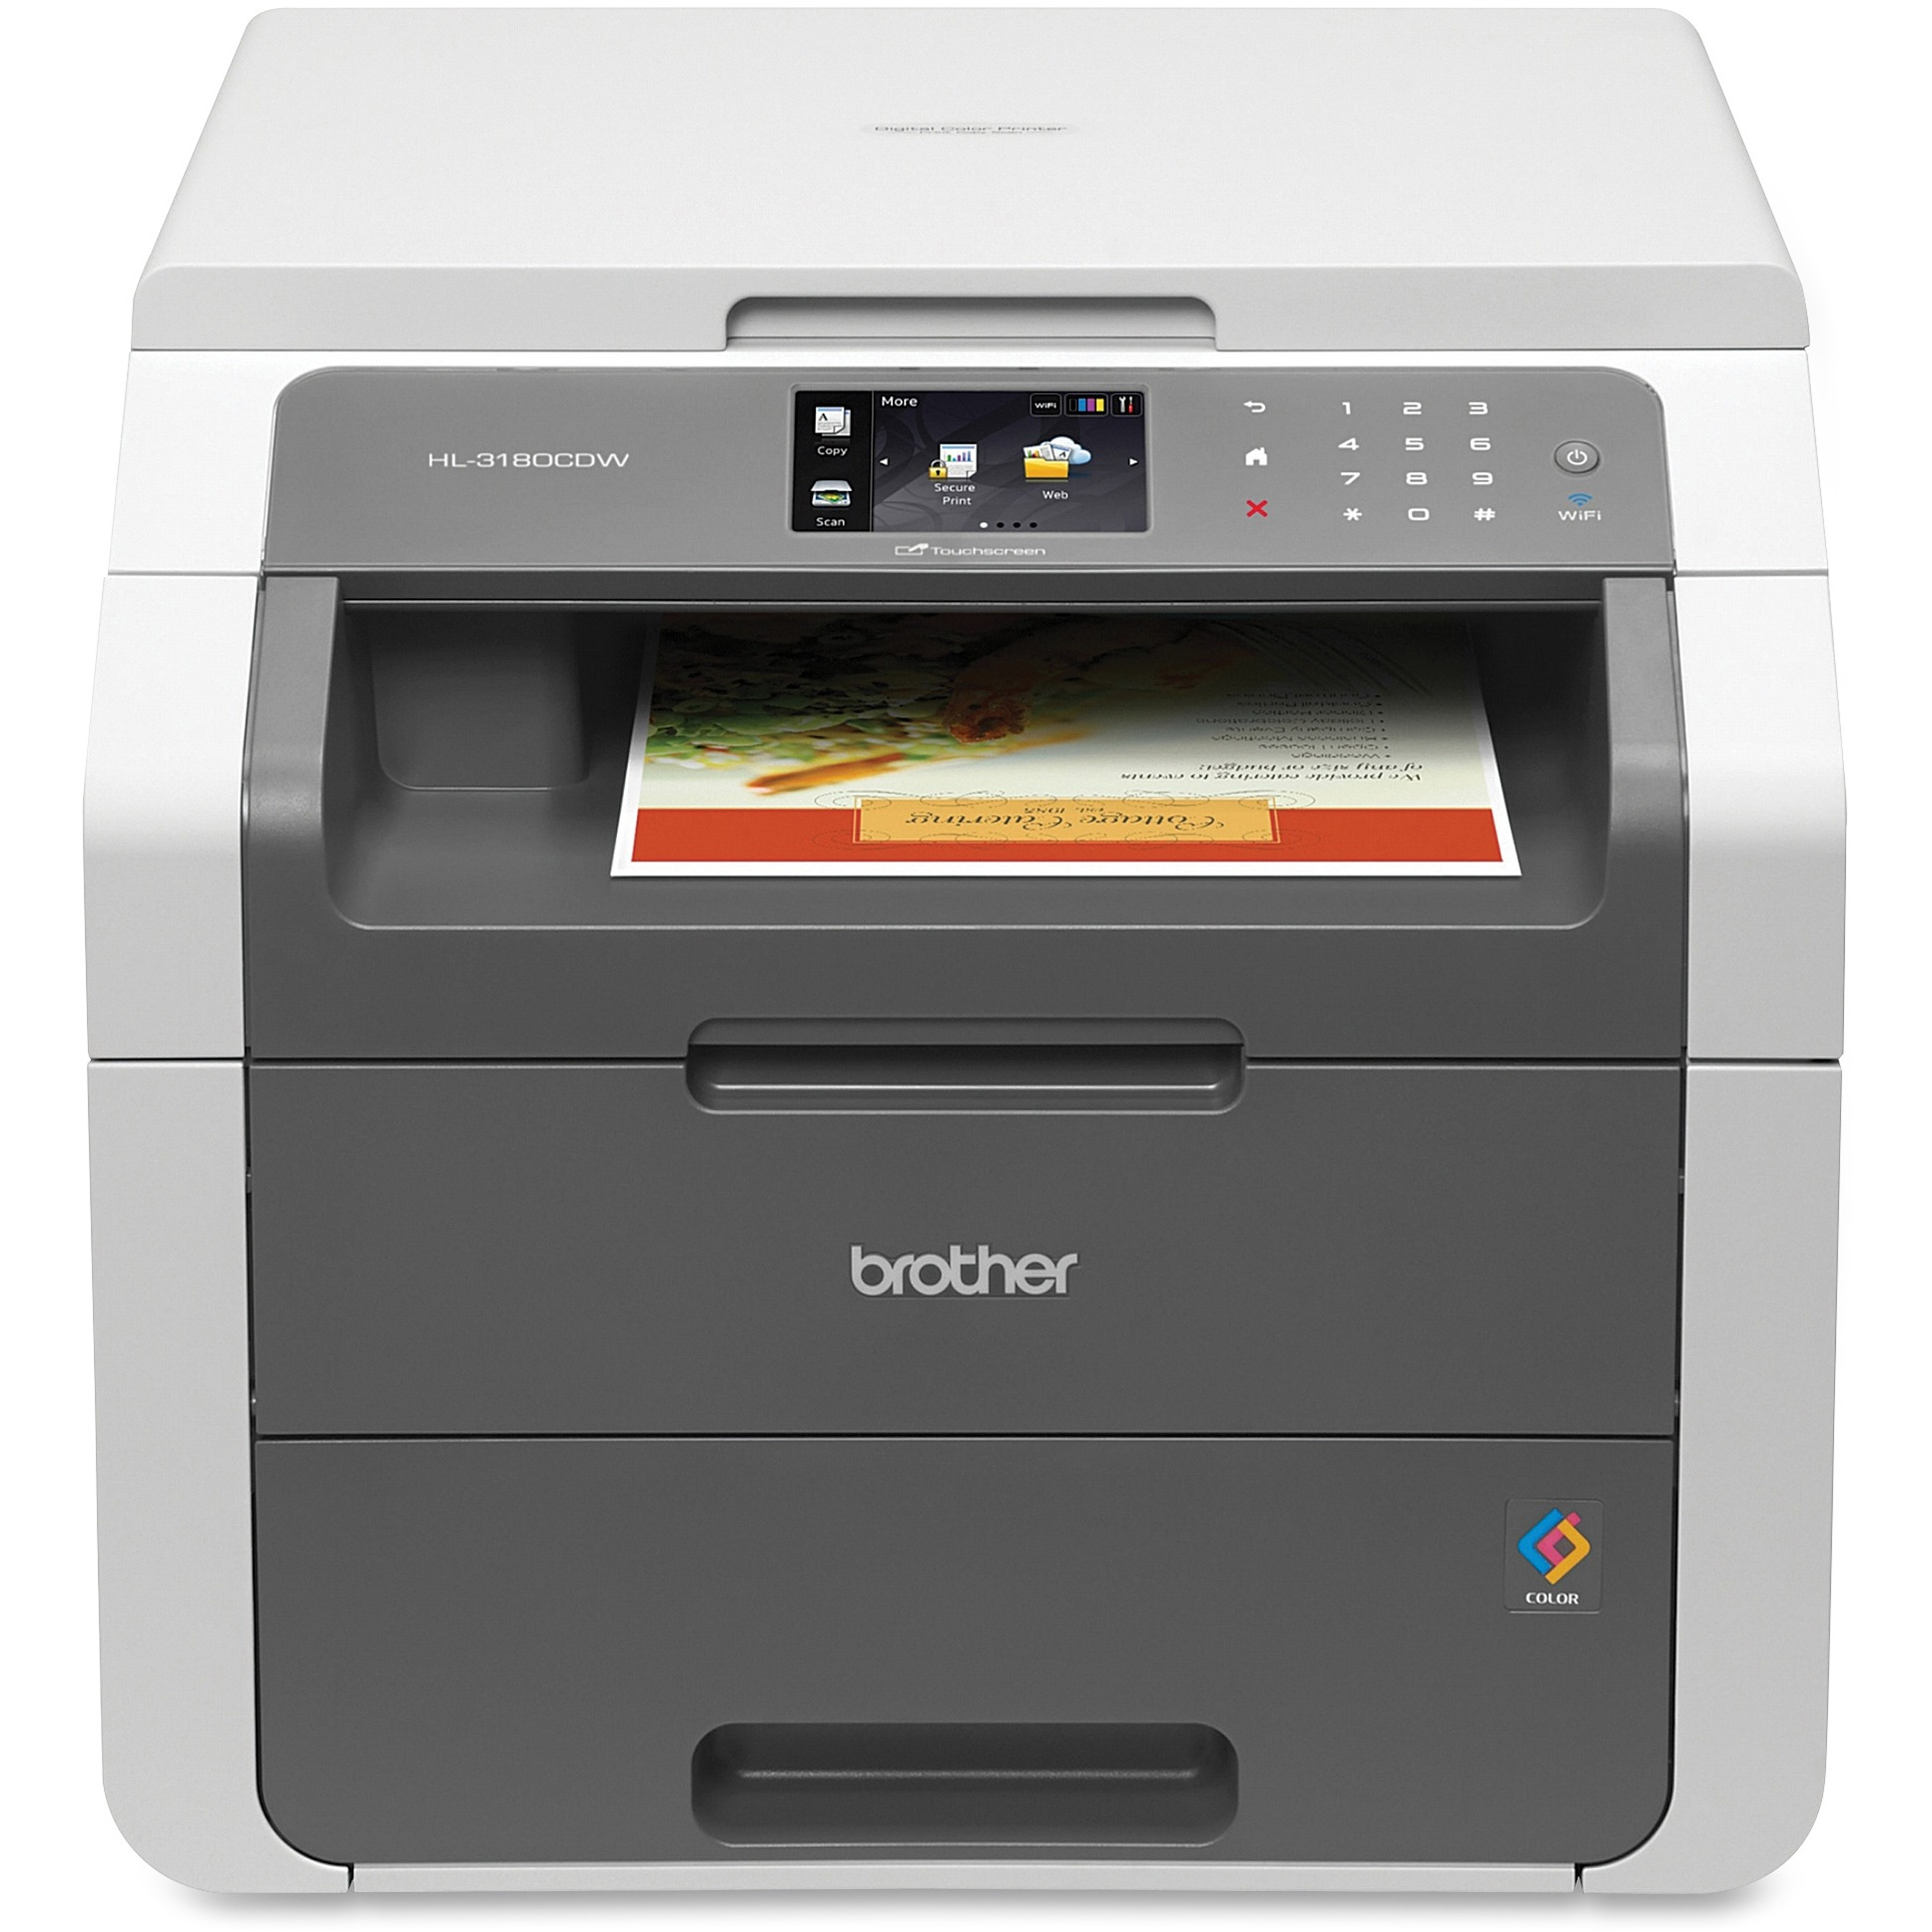 Brother HL-3180CDW Wireless Digital Color Multifunction Printer, Copy Print Scan by Brother